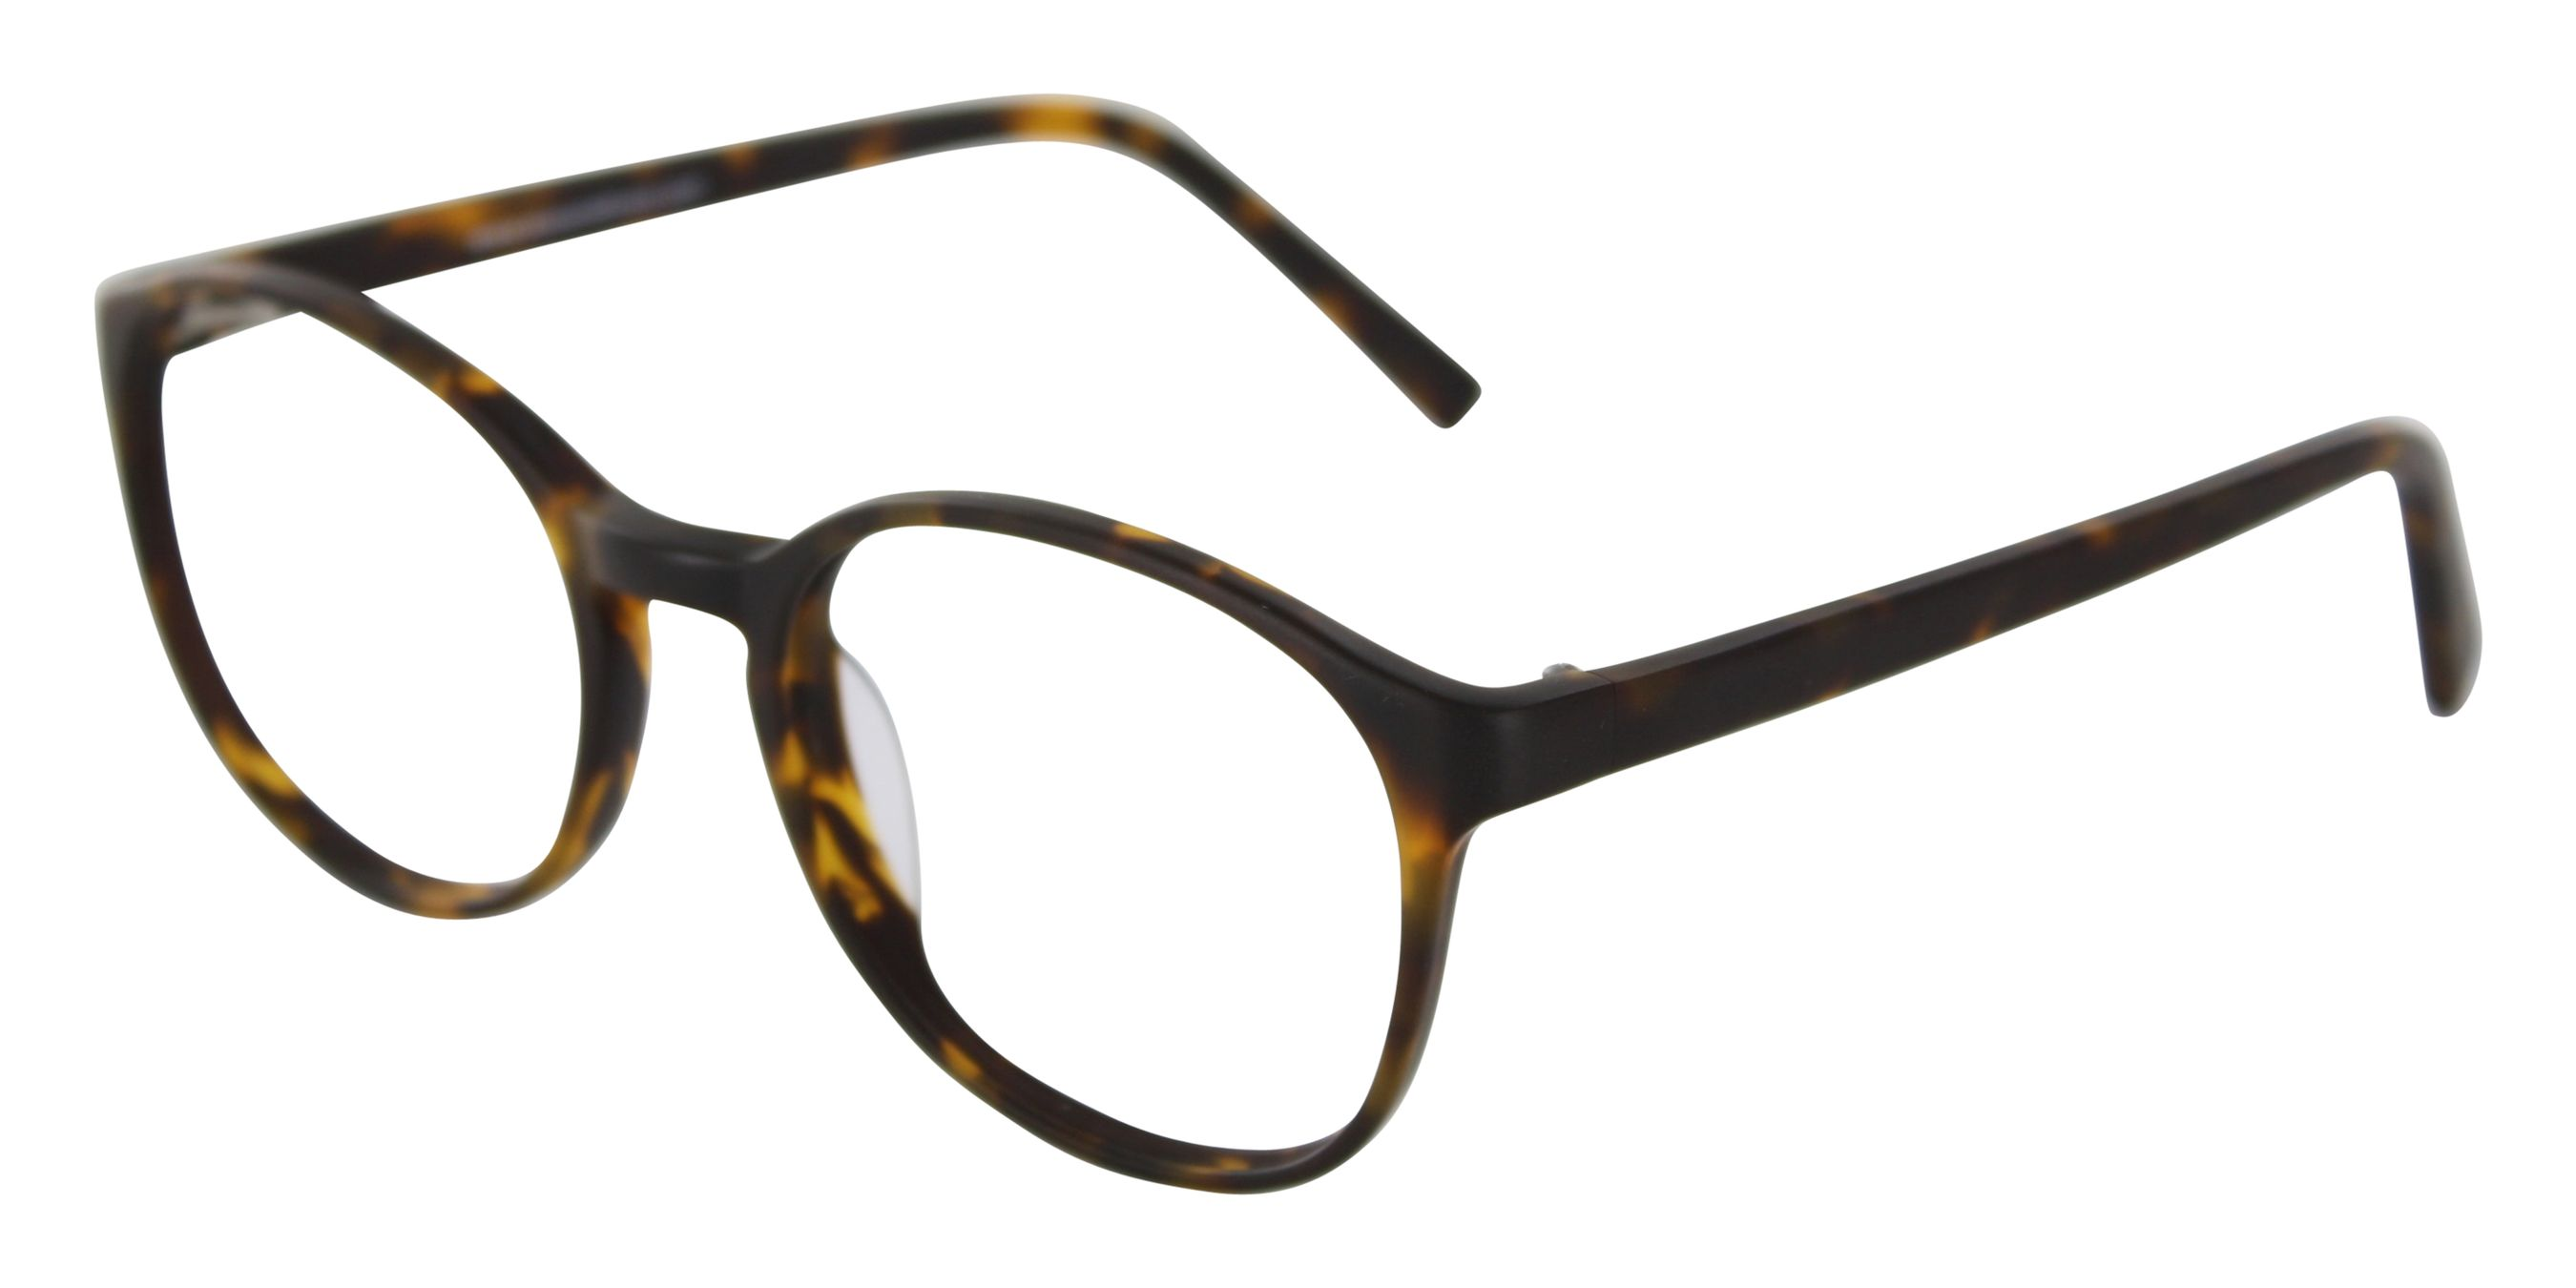 ALBA2 Brille Brown Havana für Damen | eyes + more